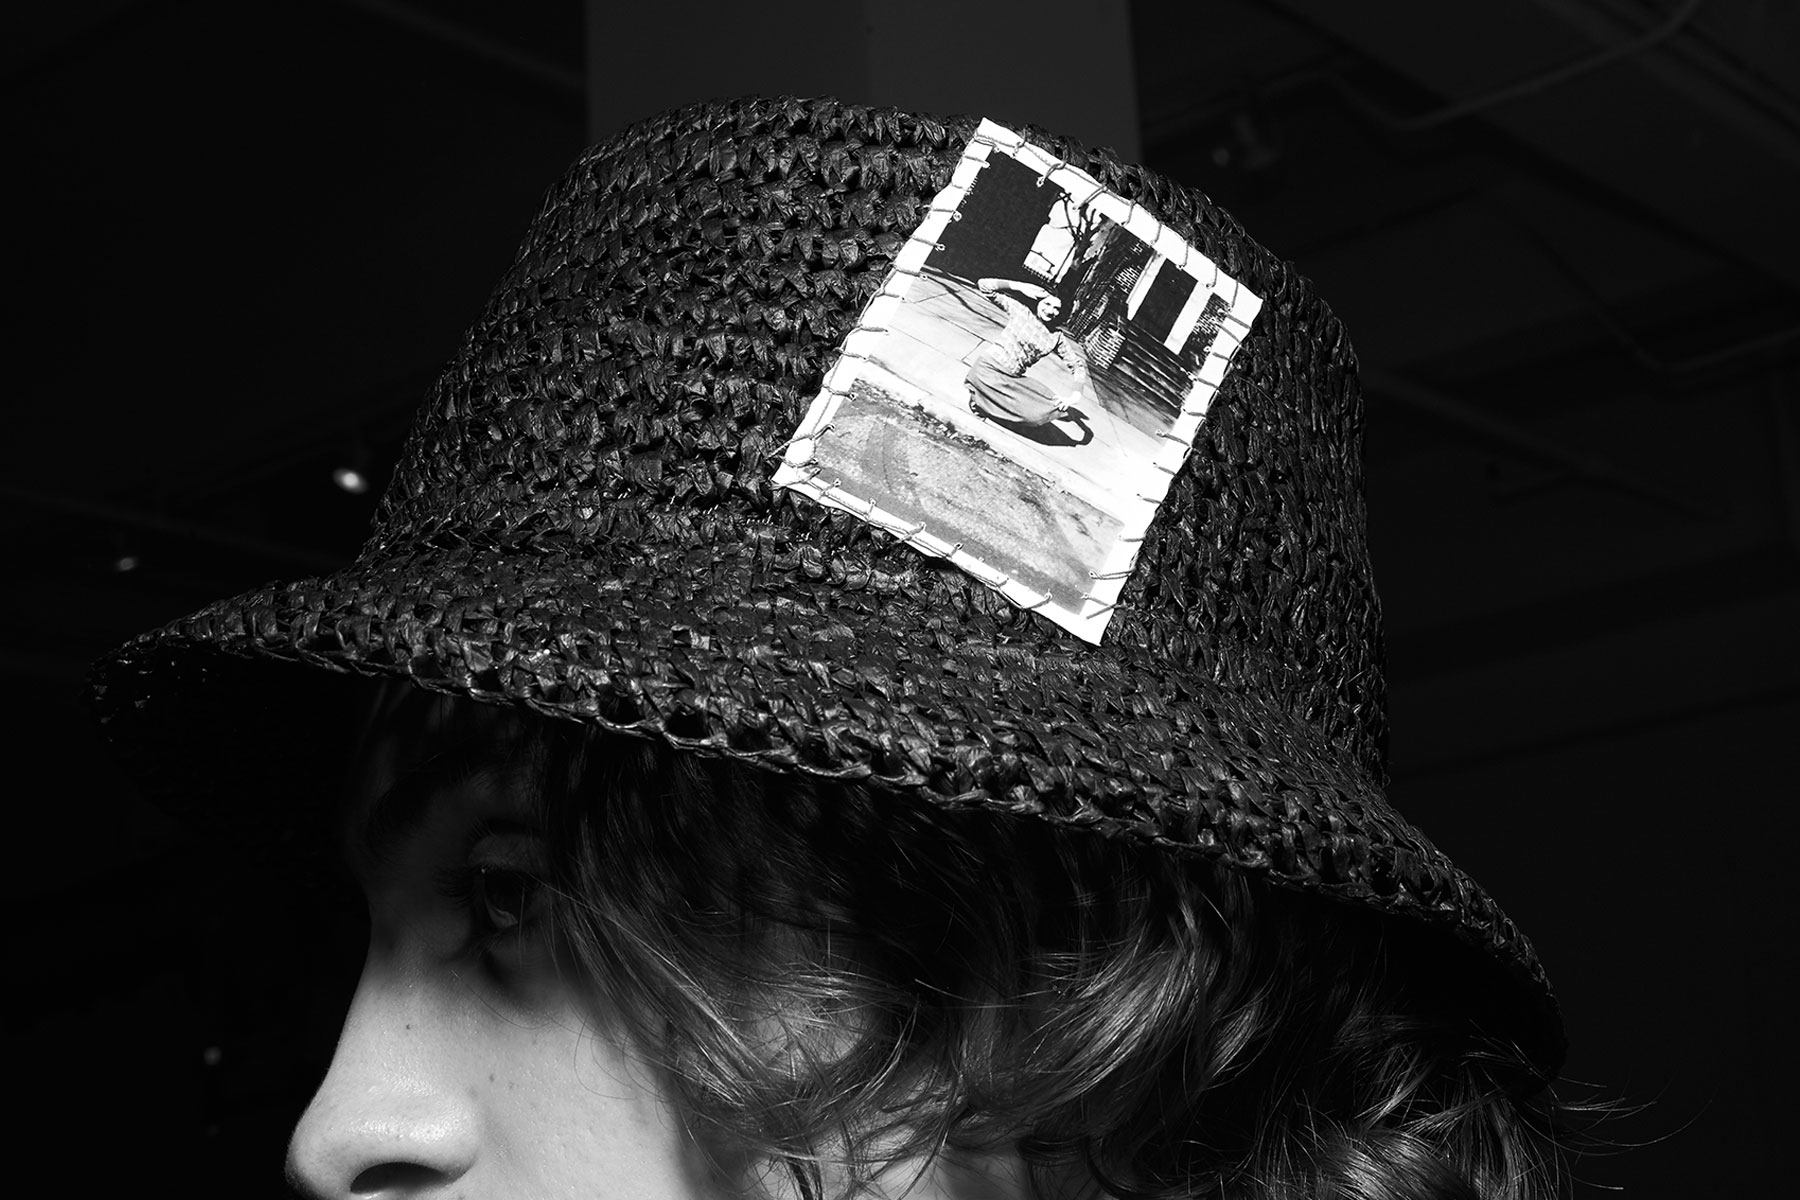 Hat by designer Rod Keenan, backstage at David Hart for Spring 2020. Photography by Alexander Thompson for Ponyboy magazine.